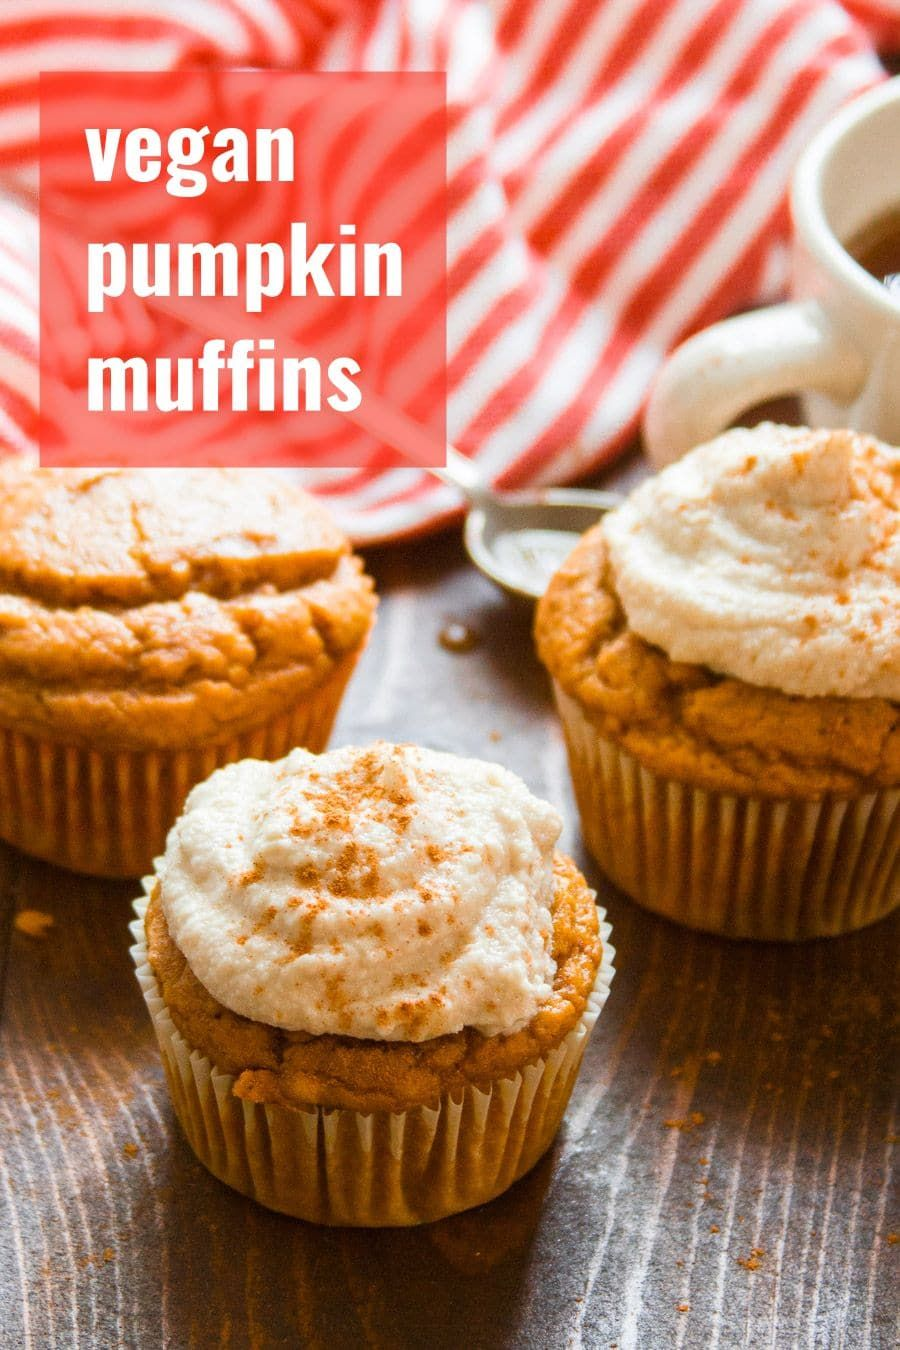 These vegan pumpkin muffins are rich, moist, and packed with spices. Top them off with rich cashew cream cheese frosting for an indulgent fall treat! #vegan #veganfood #veganrecipes #vegetarian #vegetarianrecipes #pumpkin #fall #muffins #pumpkinmuffins